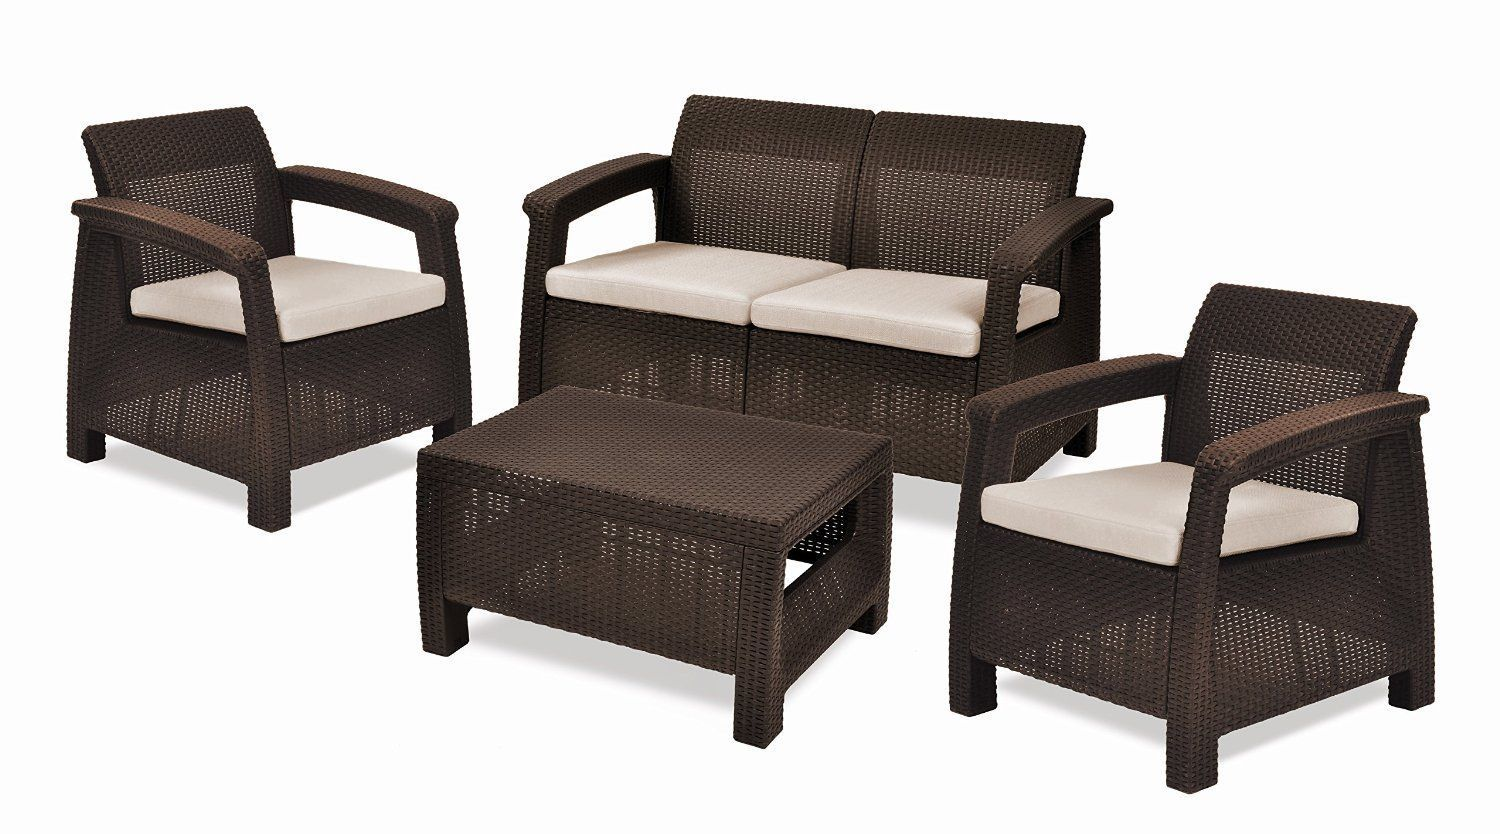 Keter Corfu Outdoor Furniture Complete 4-Pc. Set Pool